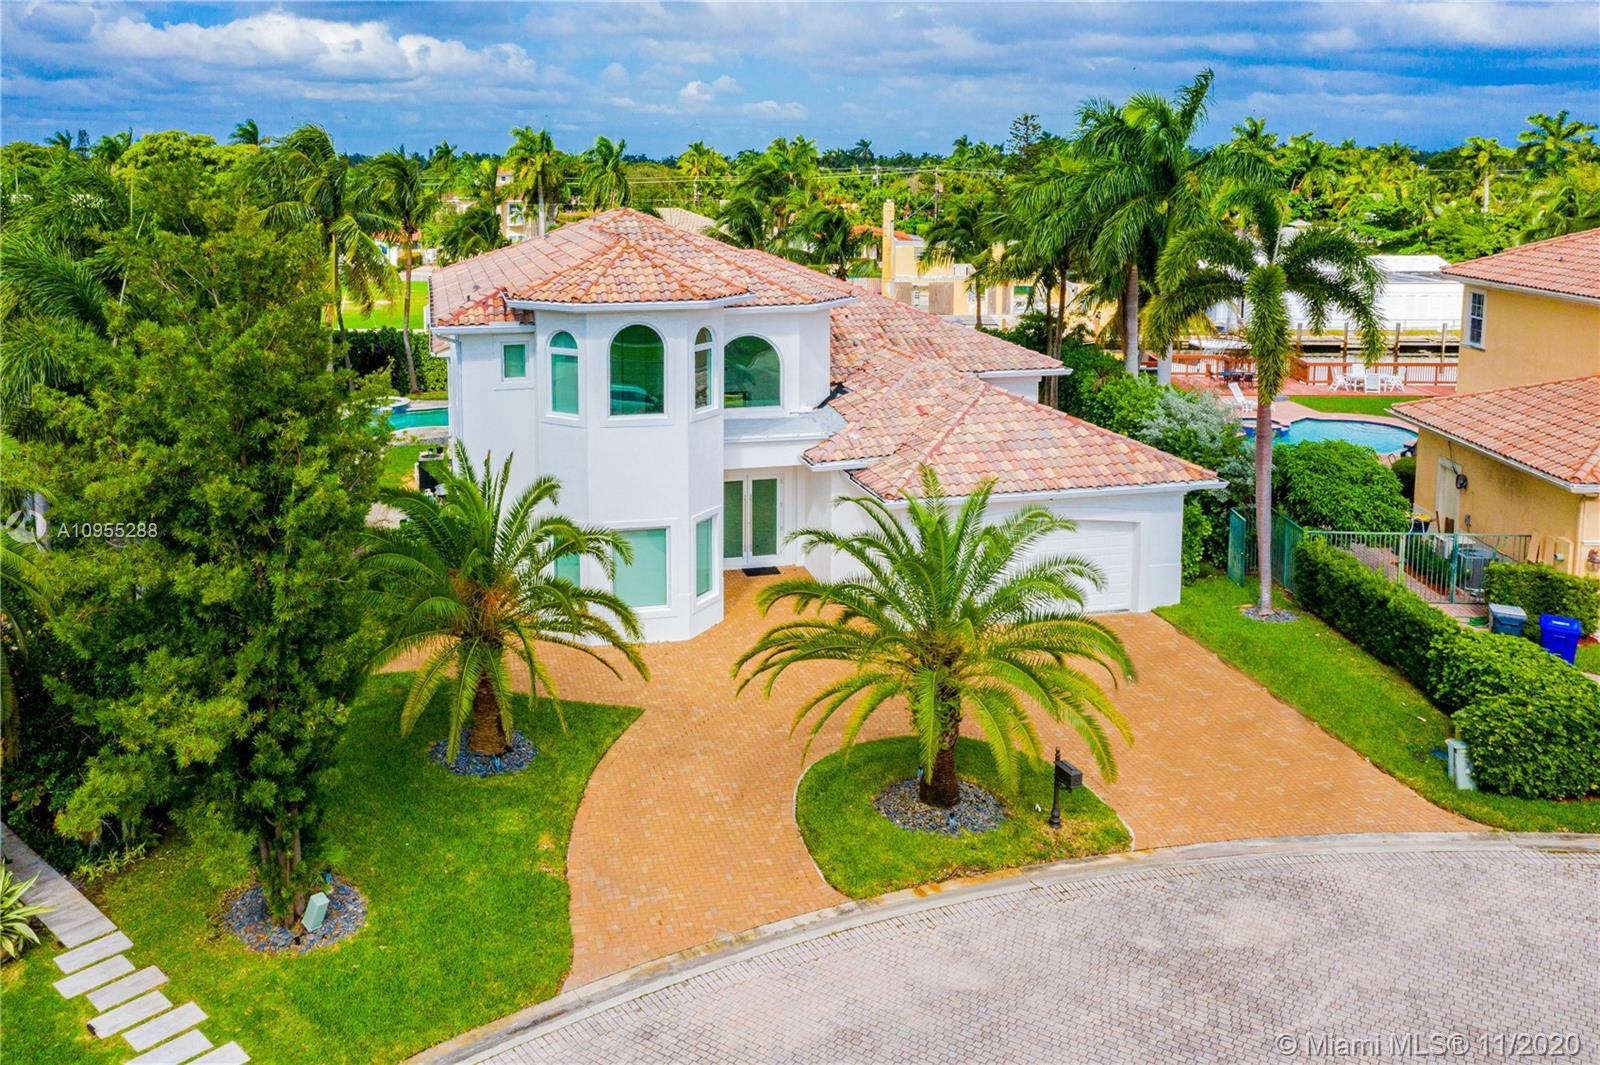 ABSOLUTELY SPECTACULAR HOME IN THE ESTATES OF HARBOR ISLAND FEATURING 4385 SQUARE FEET UNDER AIR PLU